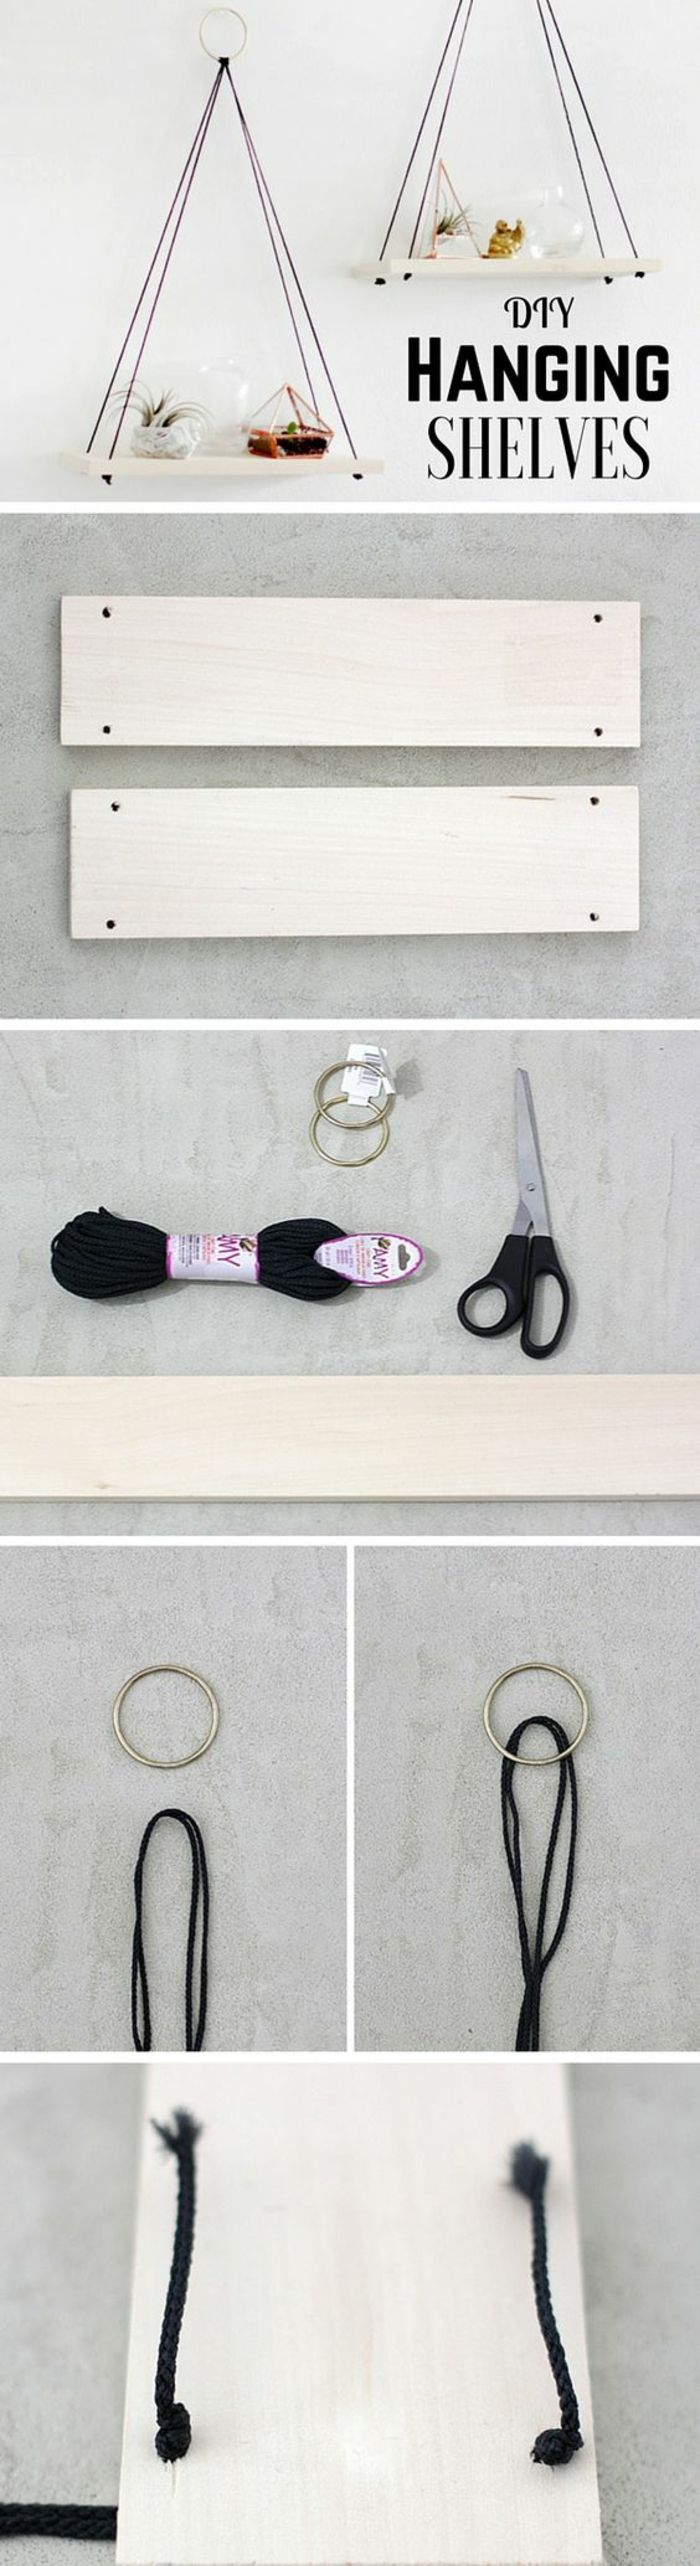 cool craft ideas hanging shelf, black yarn, scissors, wooden boards   – Room ideas